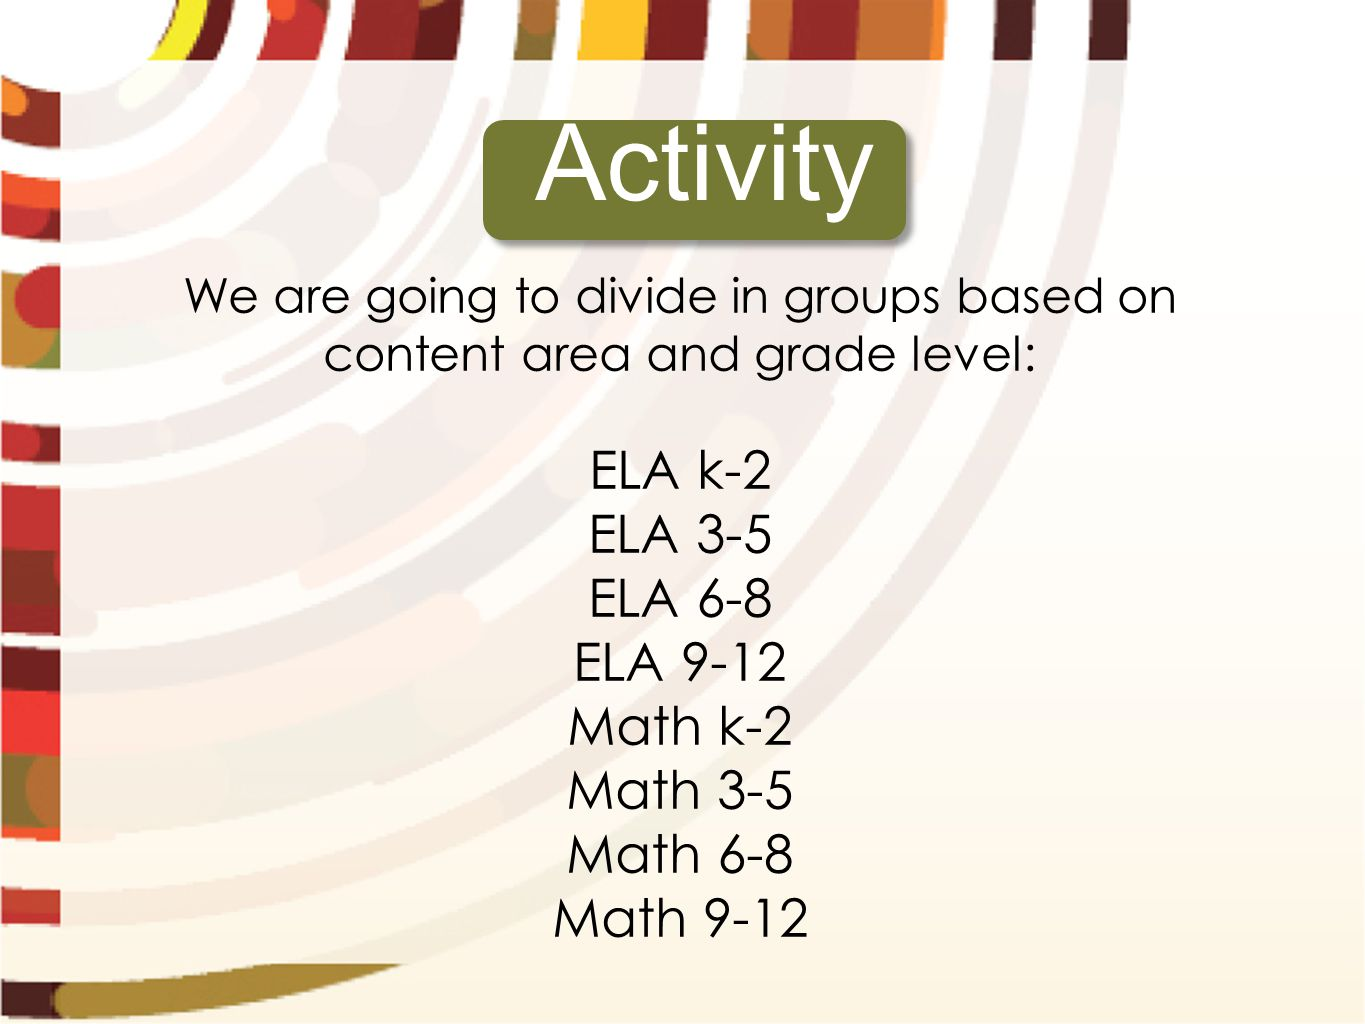 We are going to divide in groups based on content area and grade level: ELA k-2 ELA 3-5 ELA 6-8 ELA 9-12 Math k-2 Math 3-5 Math 6-8 Math 9-12 Activity